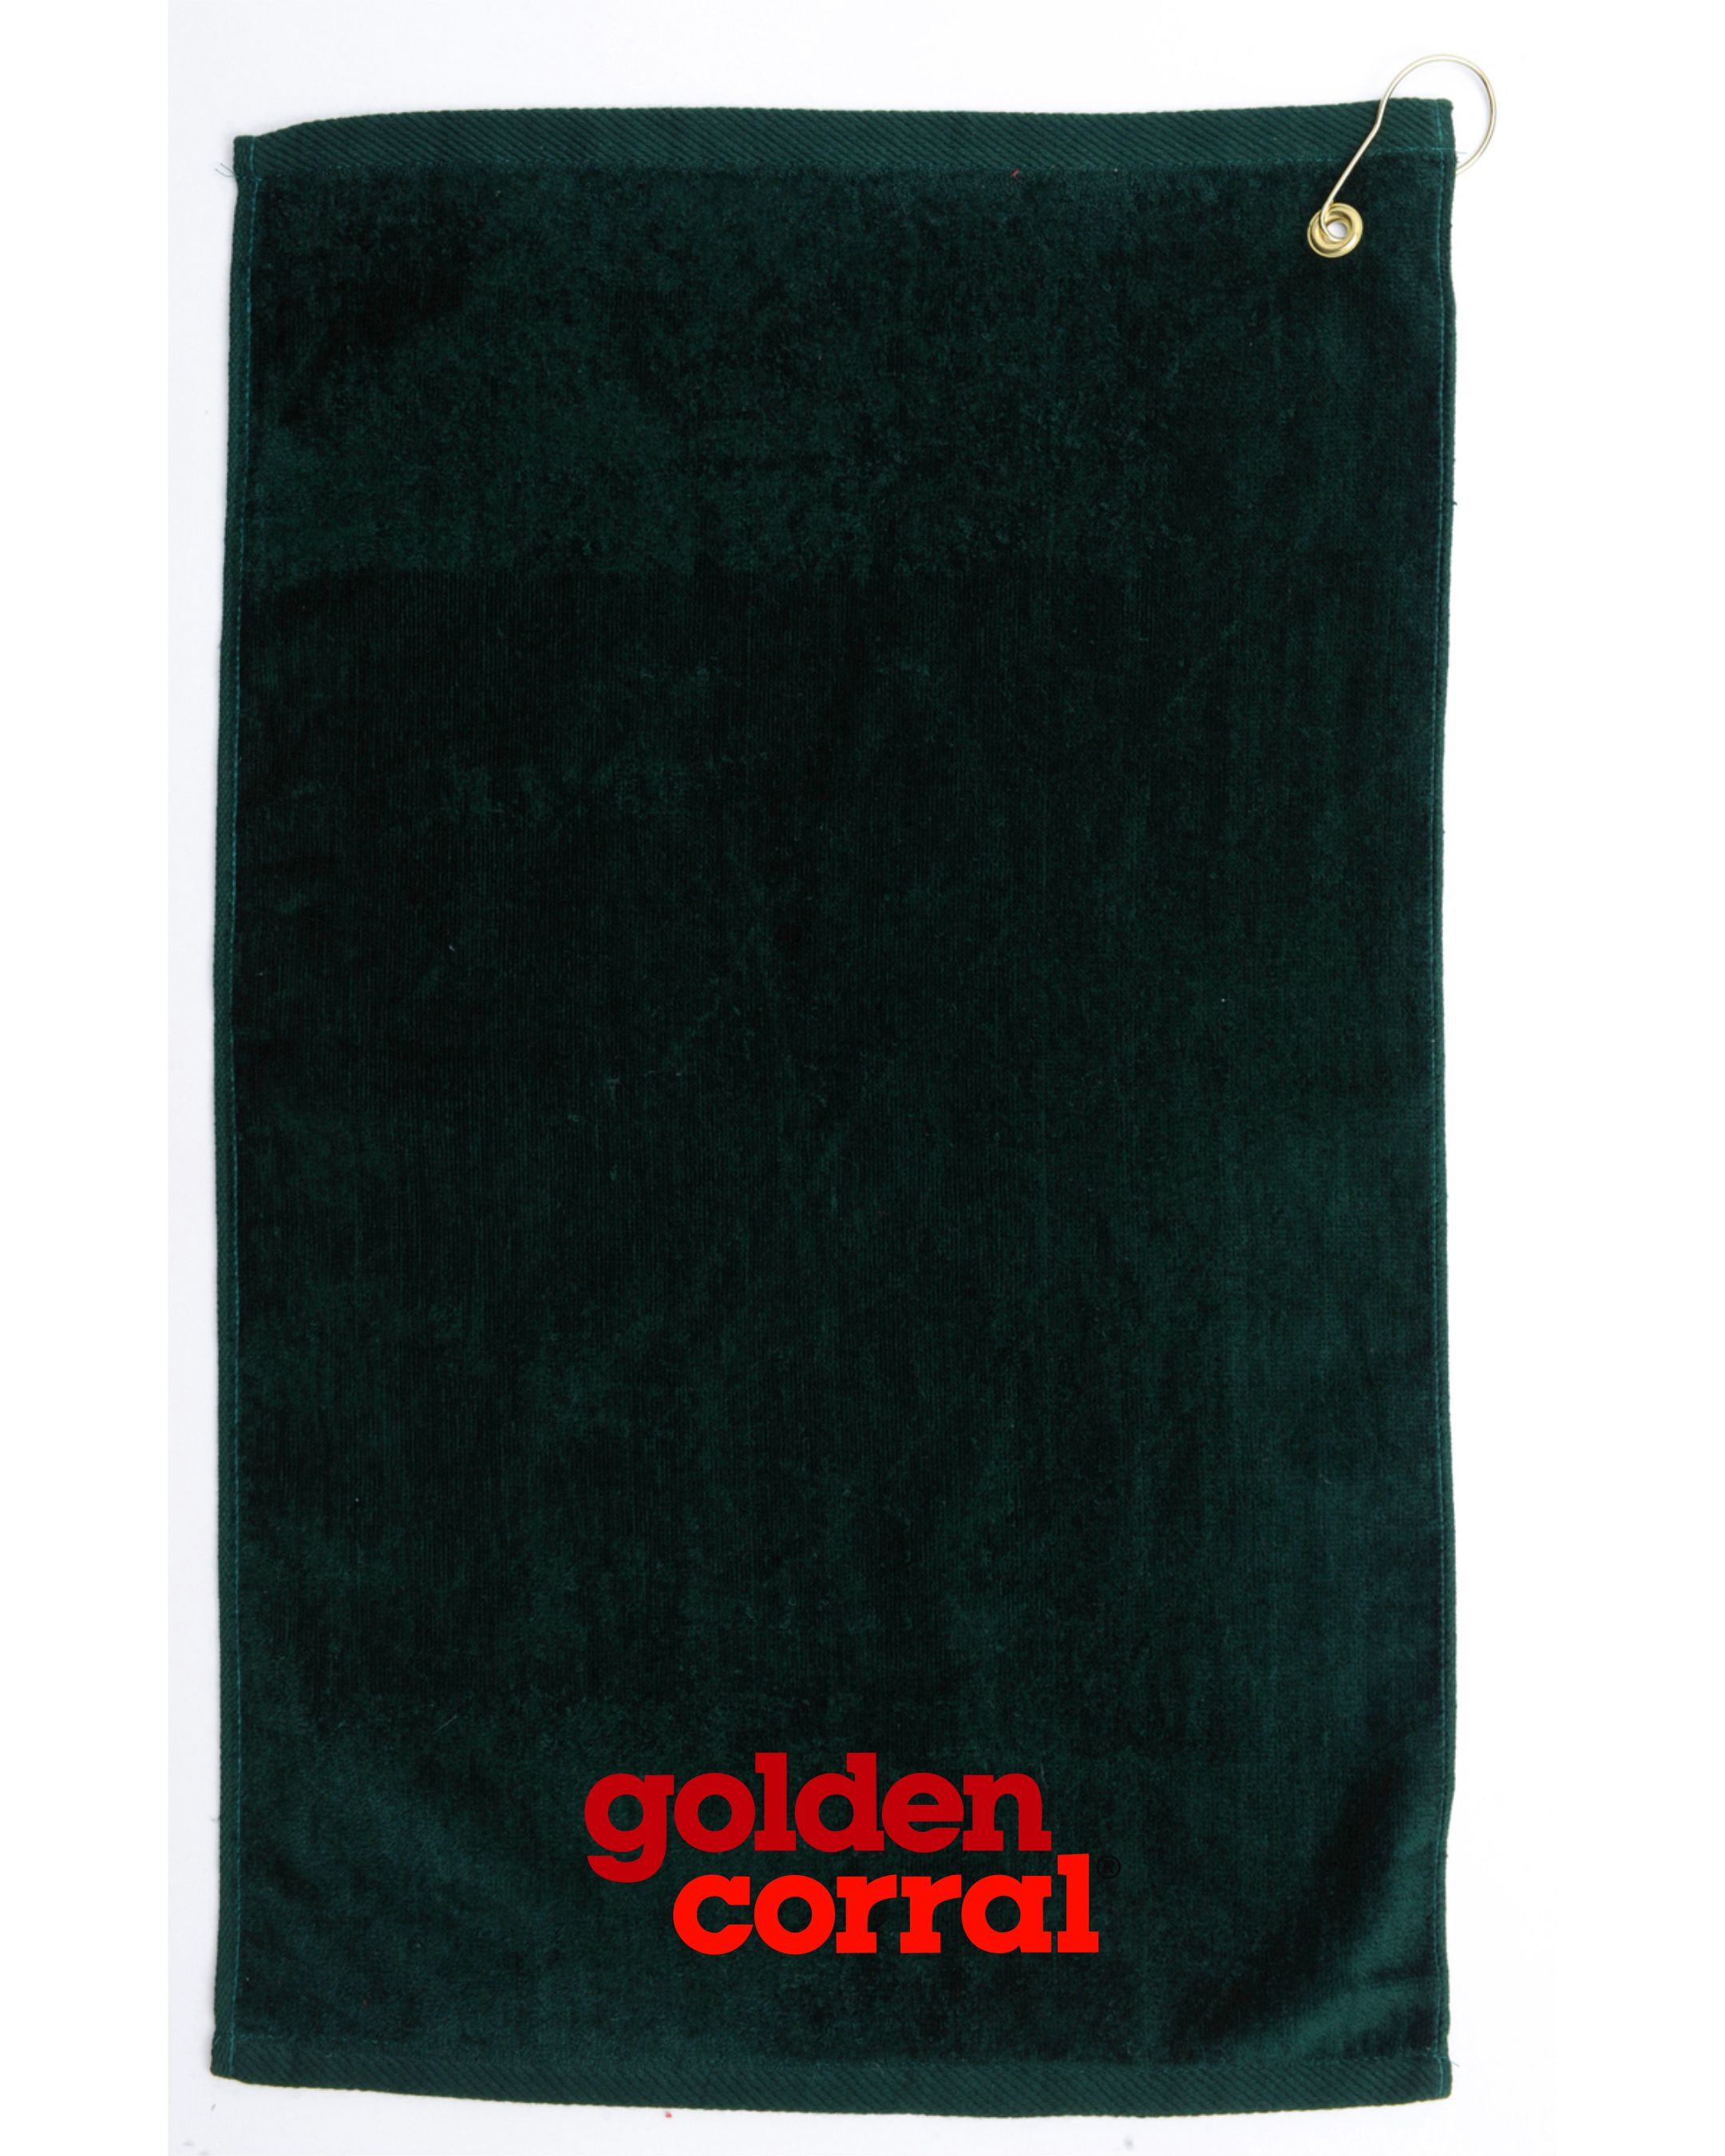 Embroidered Golden Corral Golf Towel